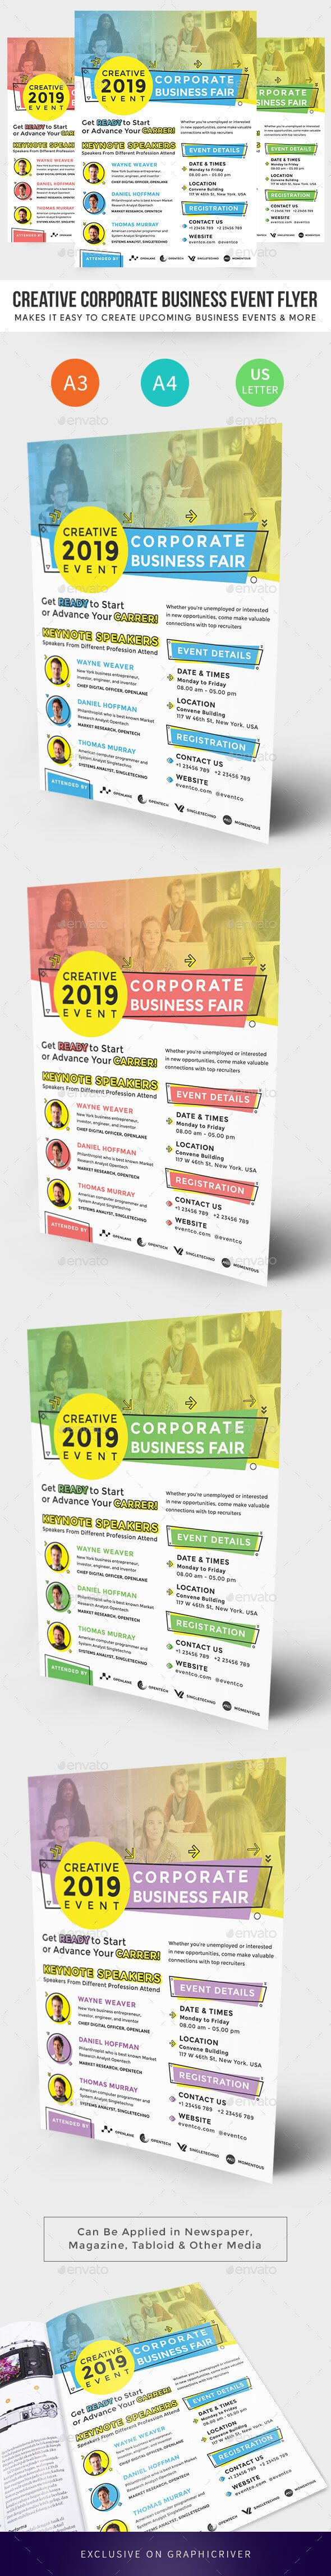 Creative Corporate Business Event Flyer is makes it easy to create a large event with large audience that usually held at convention center. With the flyer you can put the main theme of the event and also show to the people who is the special speaker for that